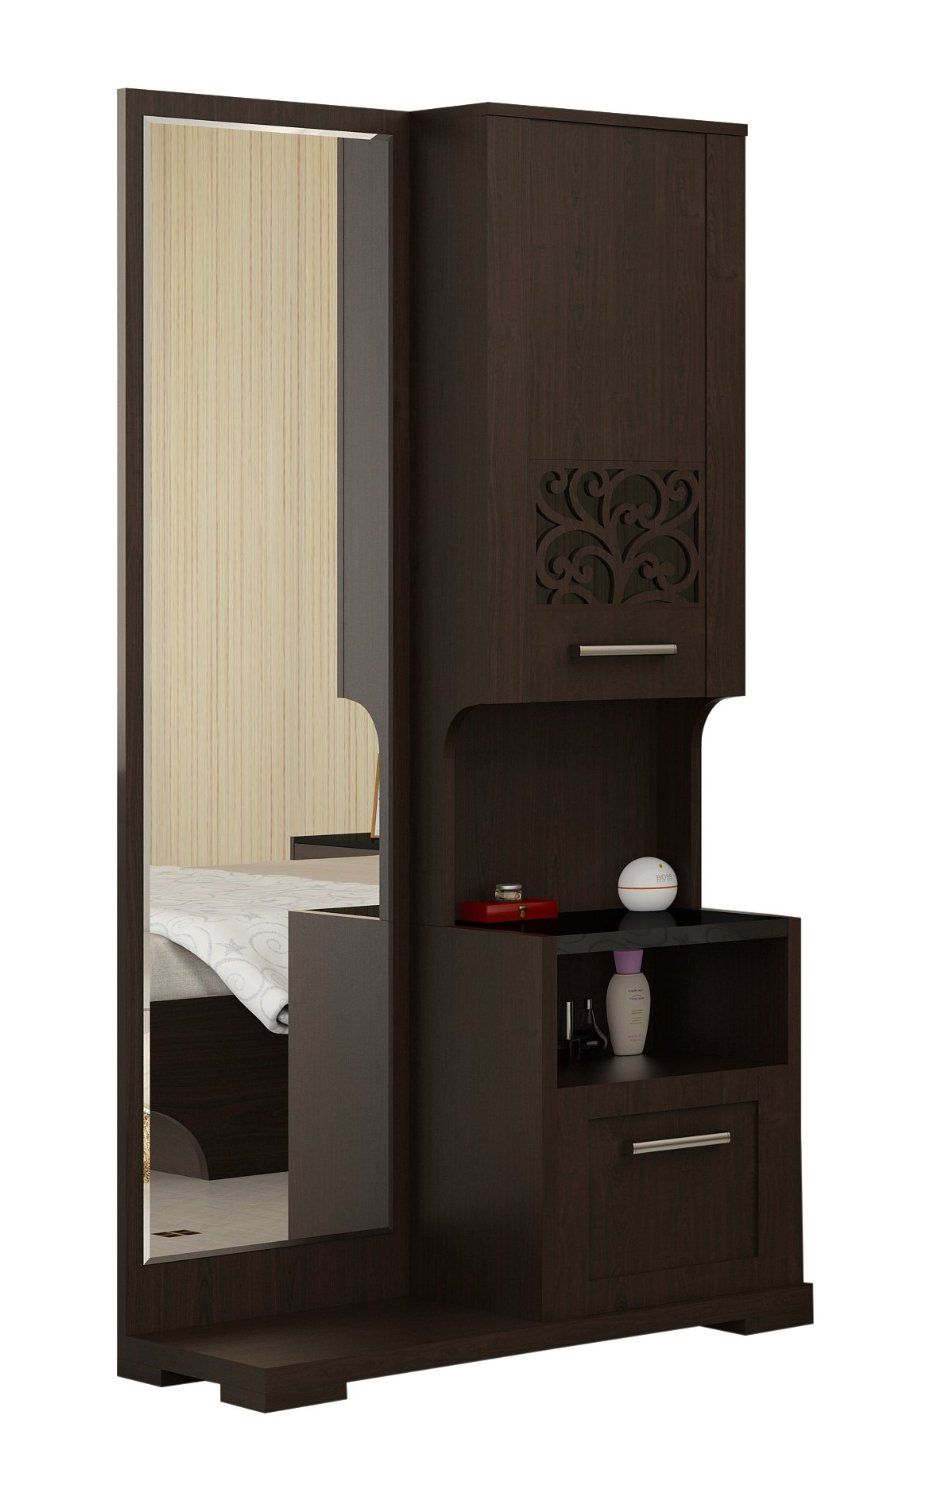 Amazon Meubles Chambre Spacewood Akina Dressing Table Brown Amazon In Home Kitchen